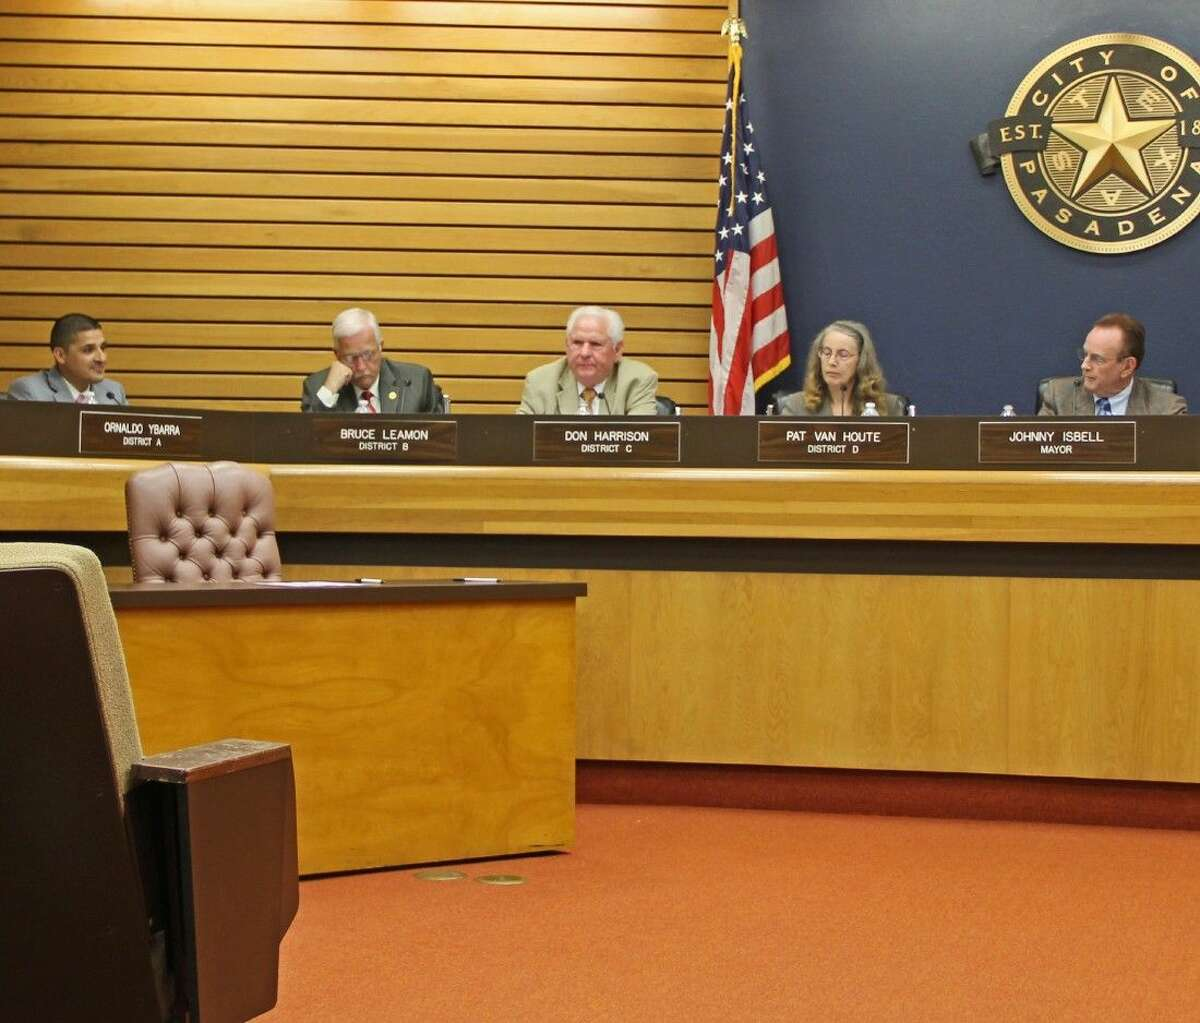 The Pasadena City Council recently hosted a public hearing to allow citizens a chance to comment on the proposed FY 2015 budget.